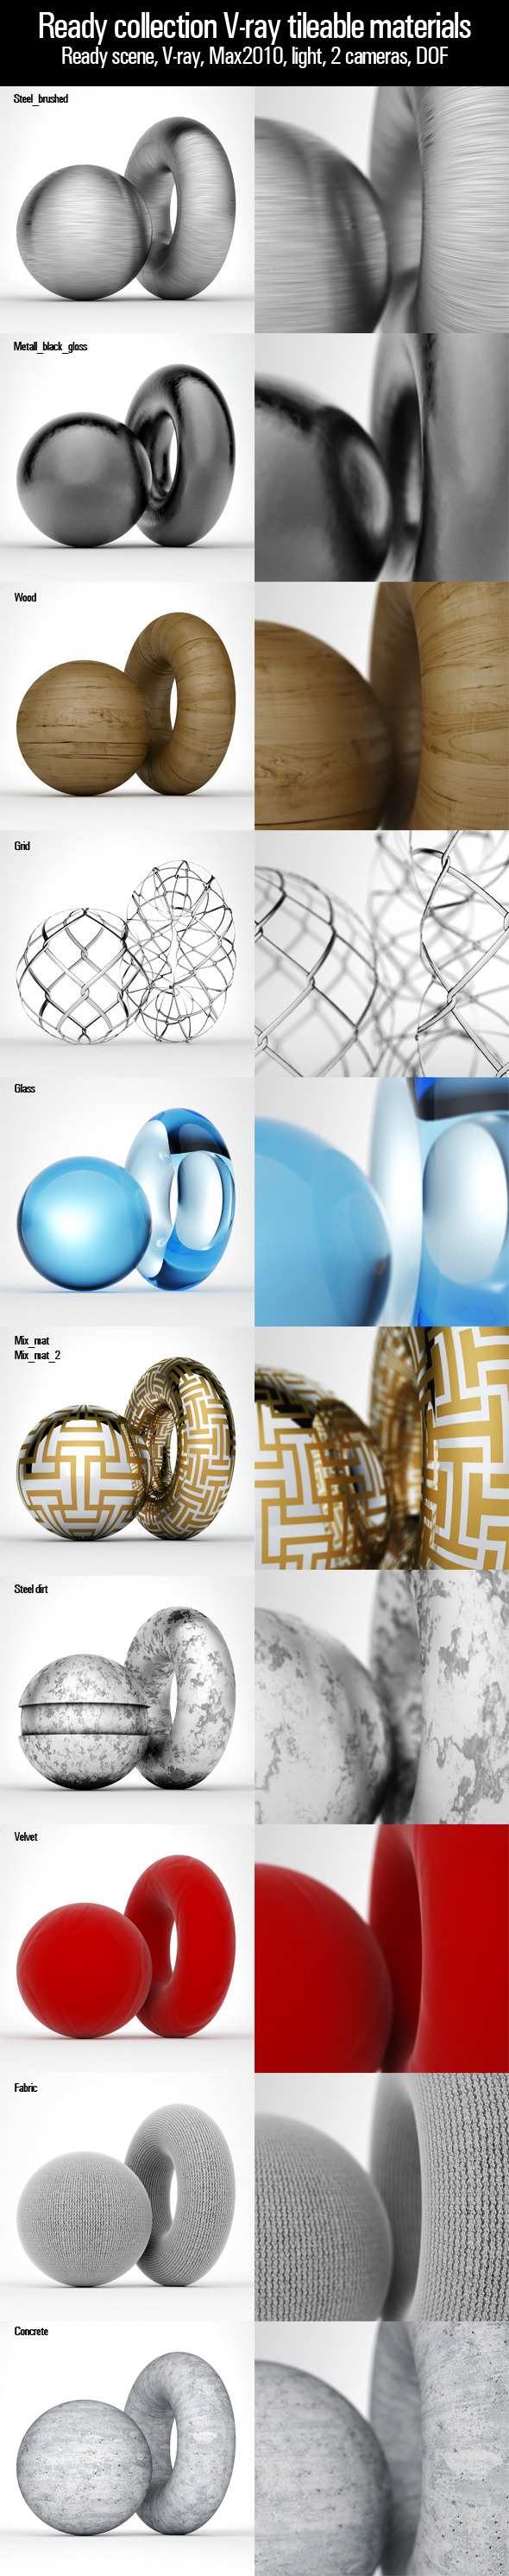 3DOcean Ready collection V-ray tileable materials 3532665